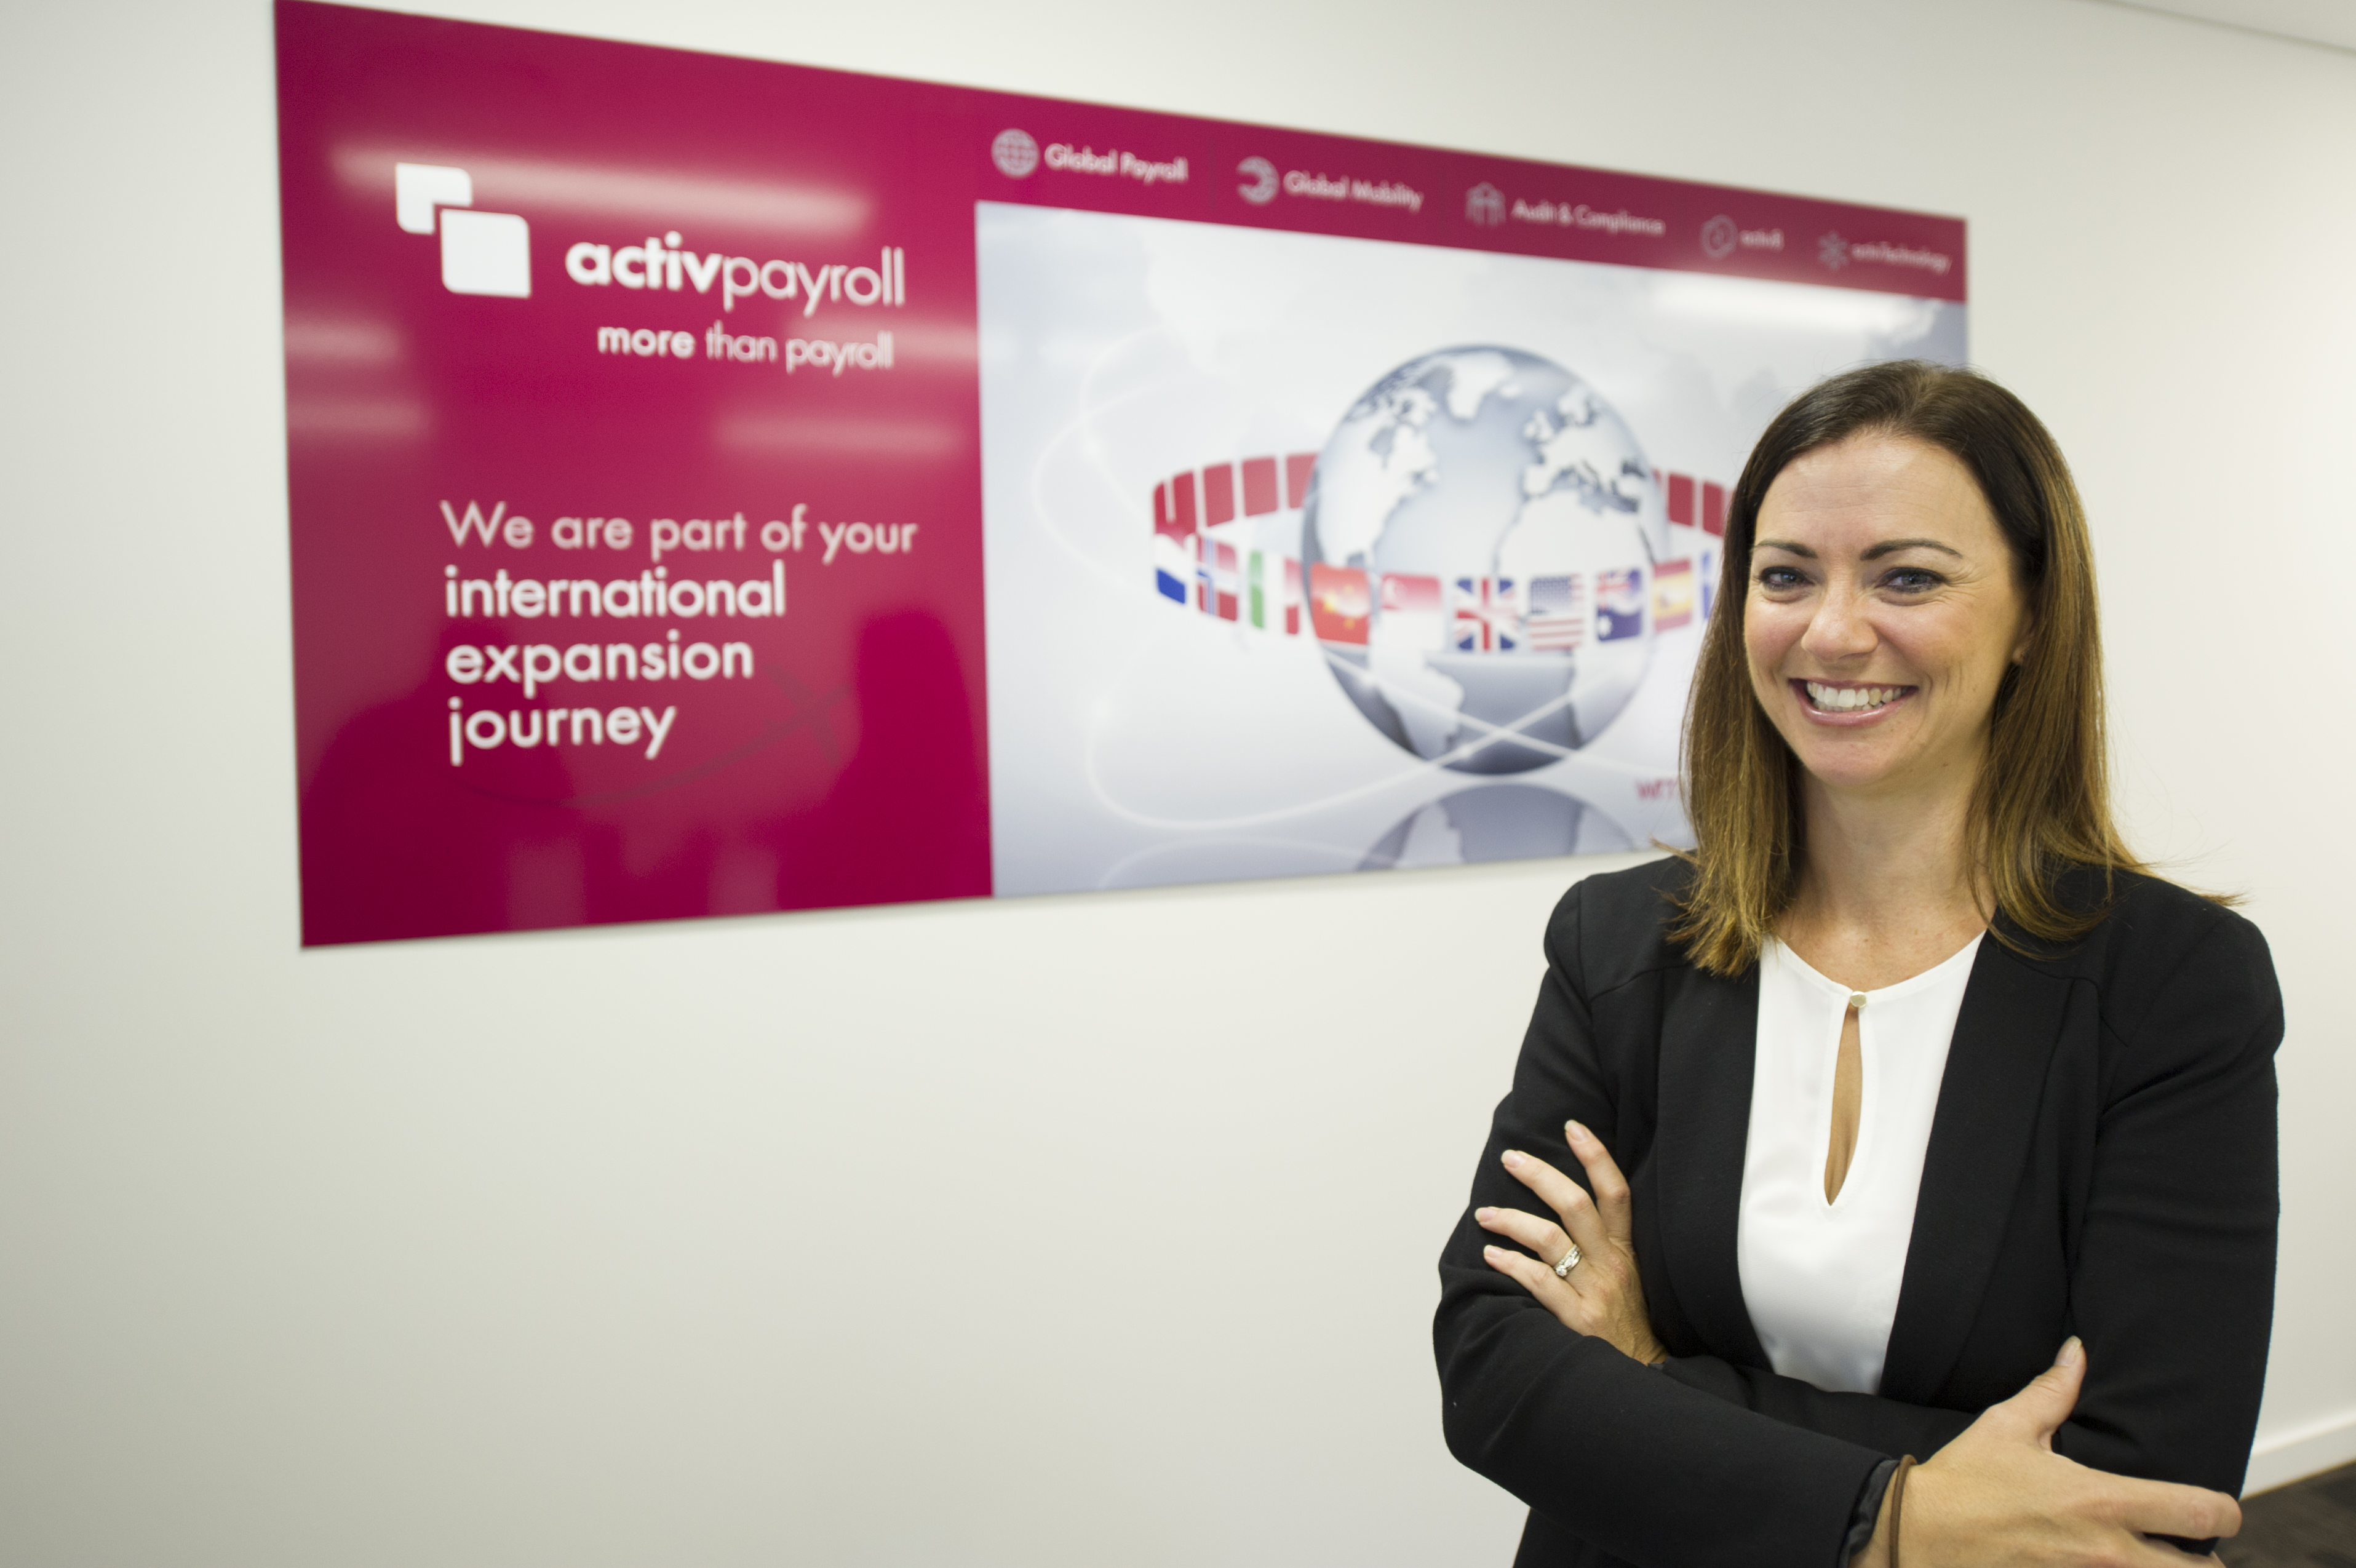 activpayroll expands horizons with new Australian office opening